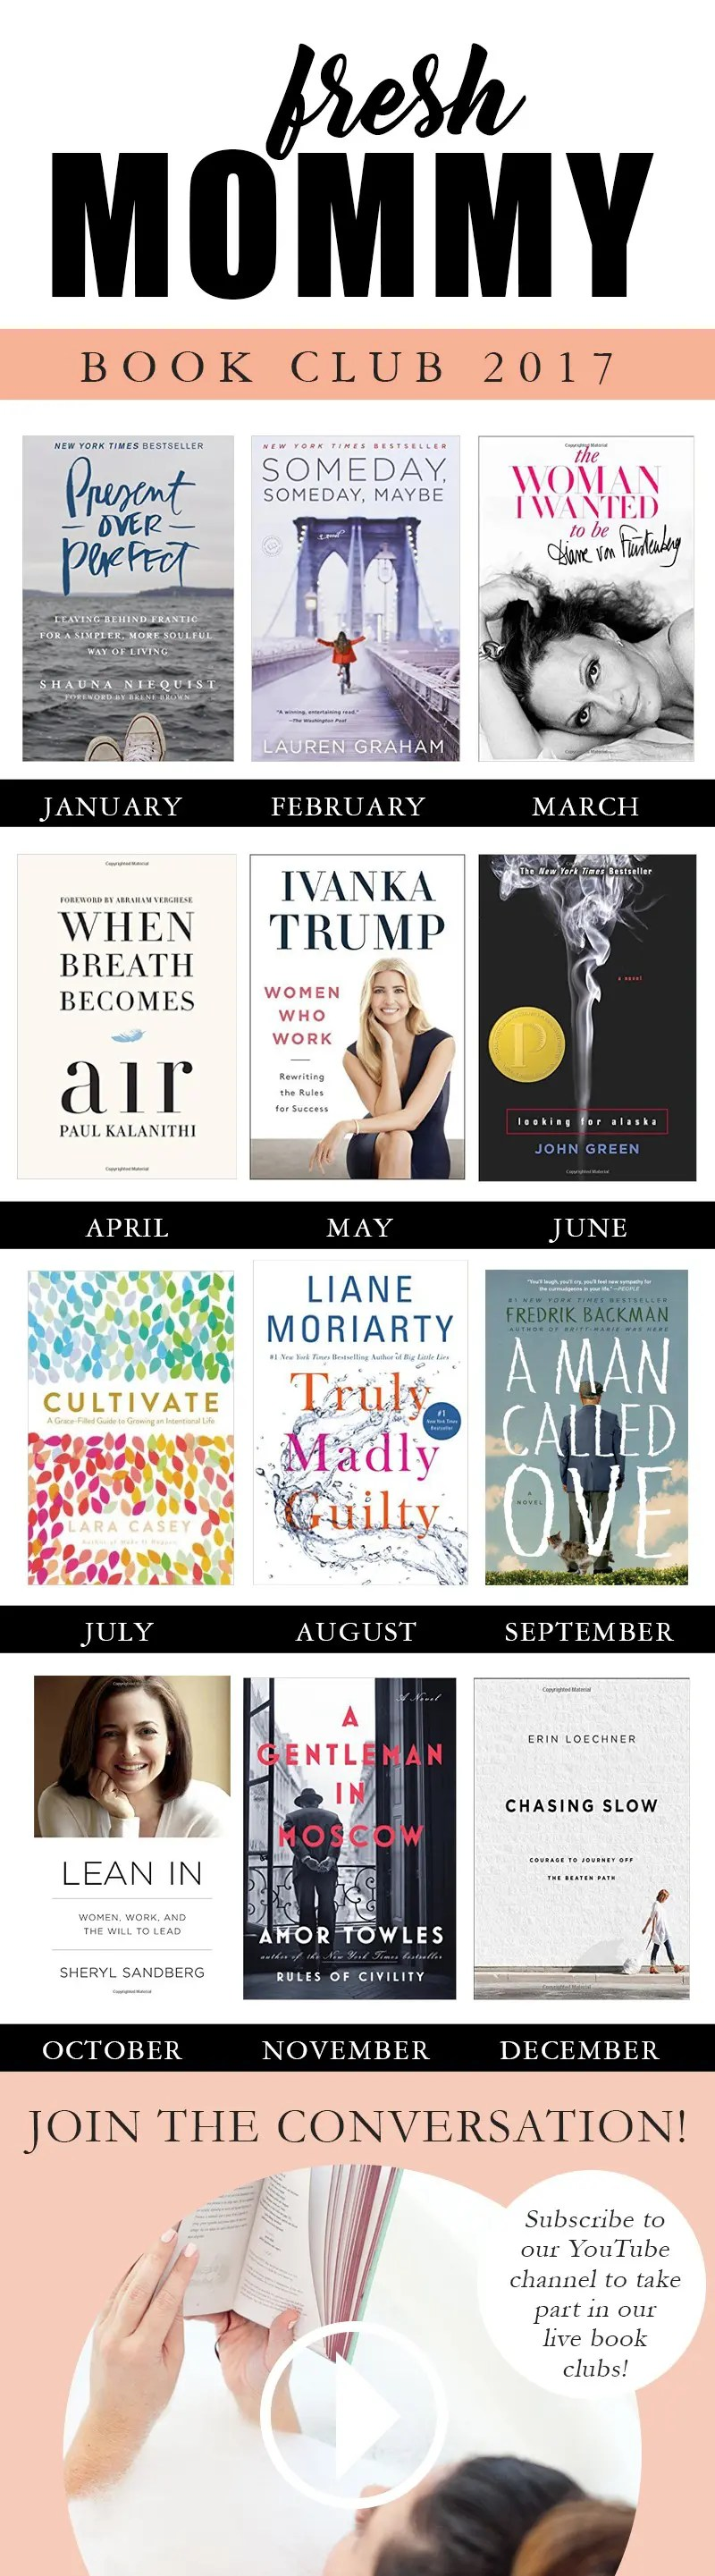 My 2017 Book Club Picks and Plan   #FreshMommyReads   Ever feel like your reading list is longer than you can finish? Well, put that aside for the moment and join us in our new #FreshMommyReads BOOK CLUB!! We've rounded up TOP picks from all different genres and will be having live reviews and conversations right here on this channel and live events at our studio every month as well!